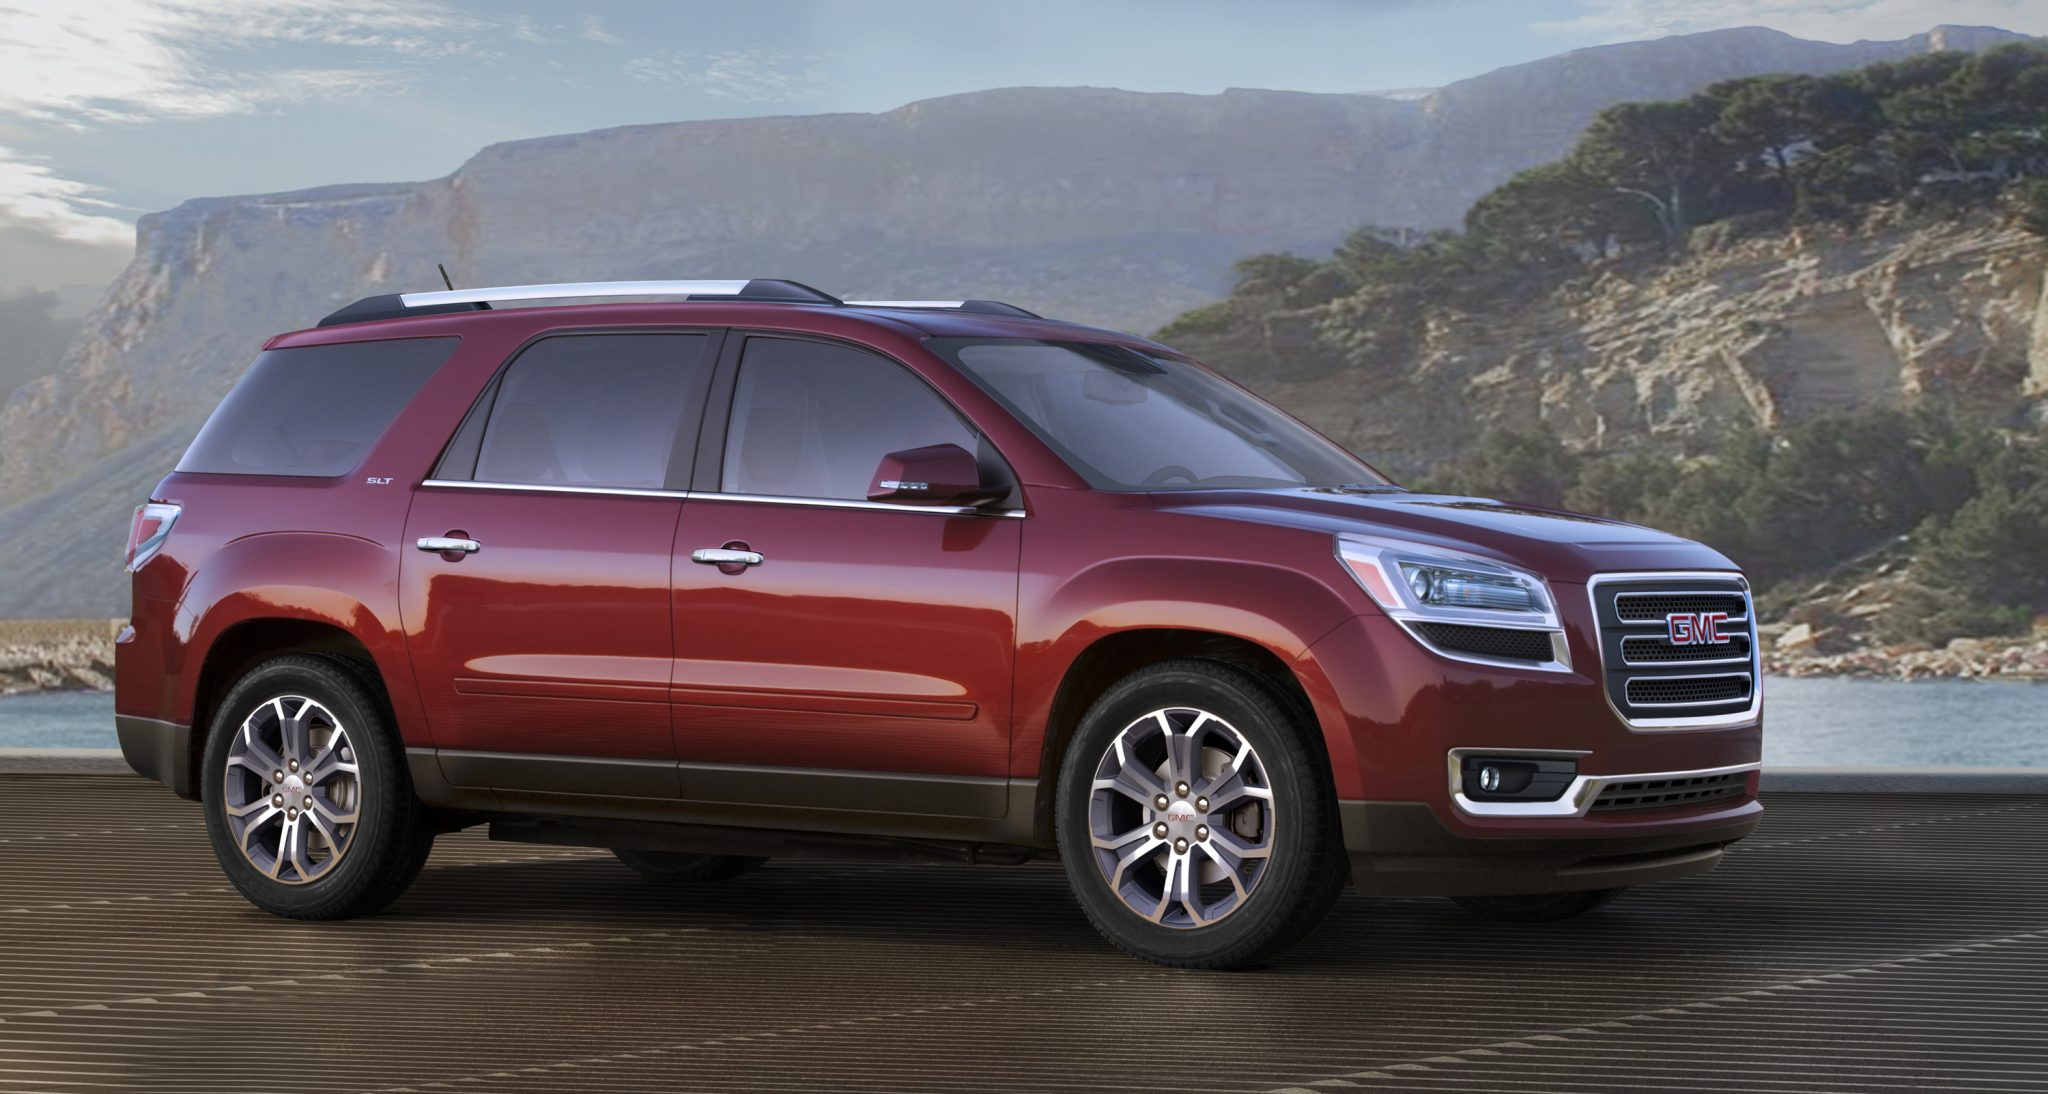 Gmc Vs Chevy >> Check Out the Updates for the 2015 GMC Acadia - The News Wheel